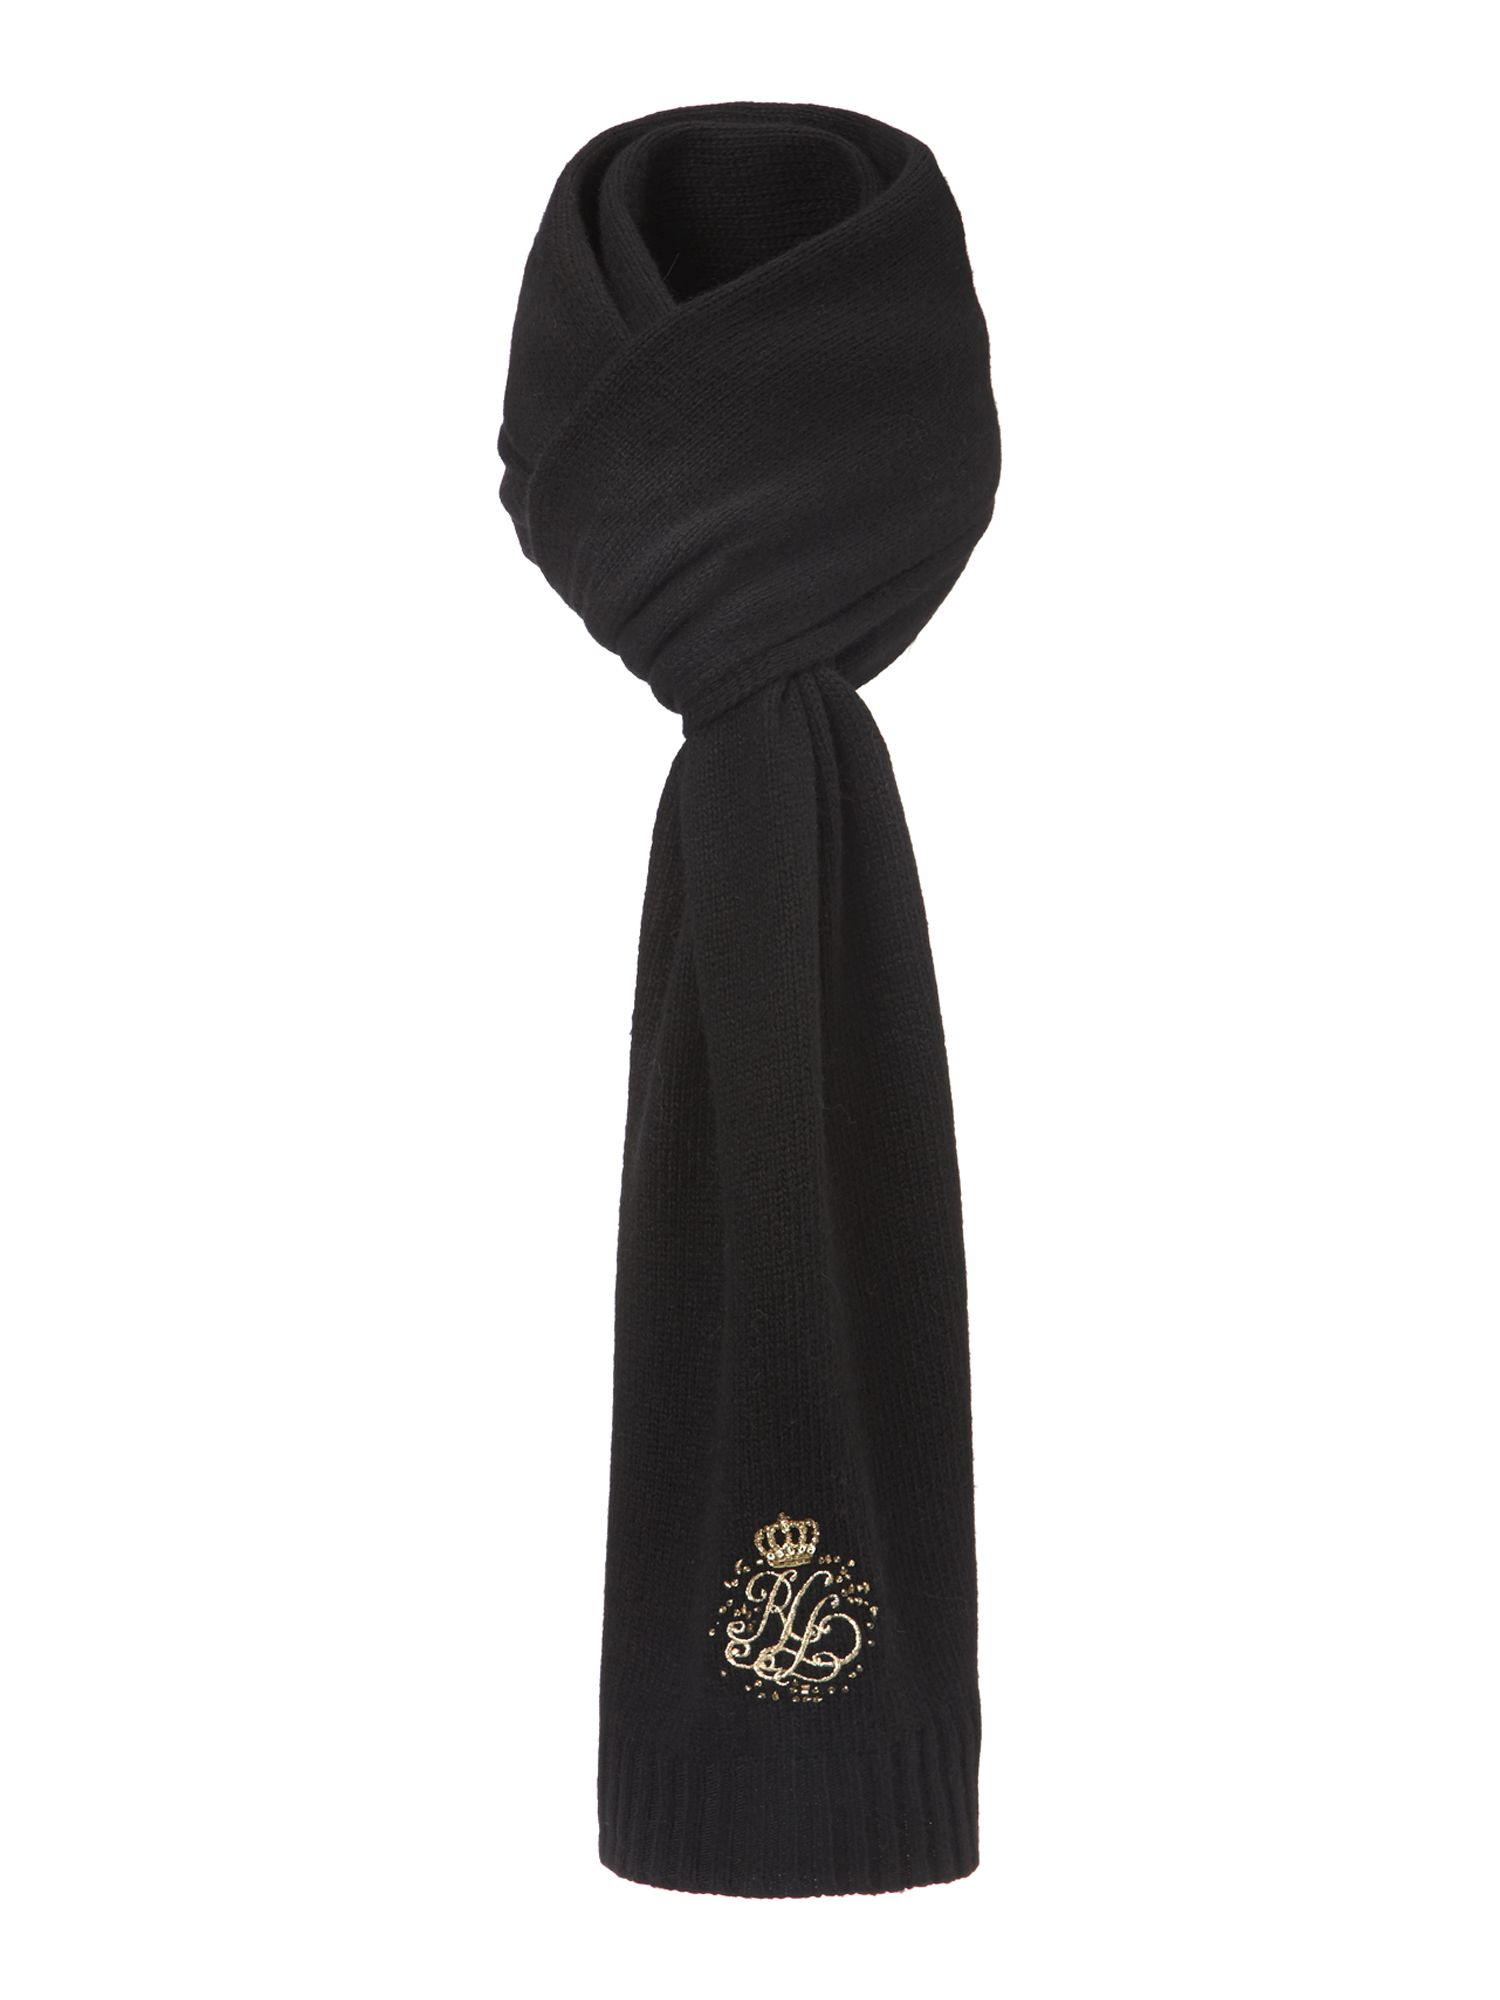 Signature monogram scarf